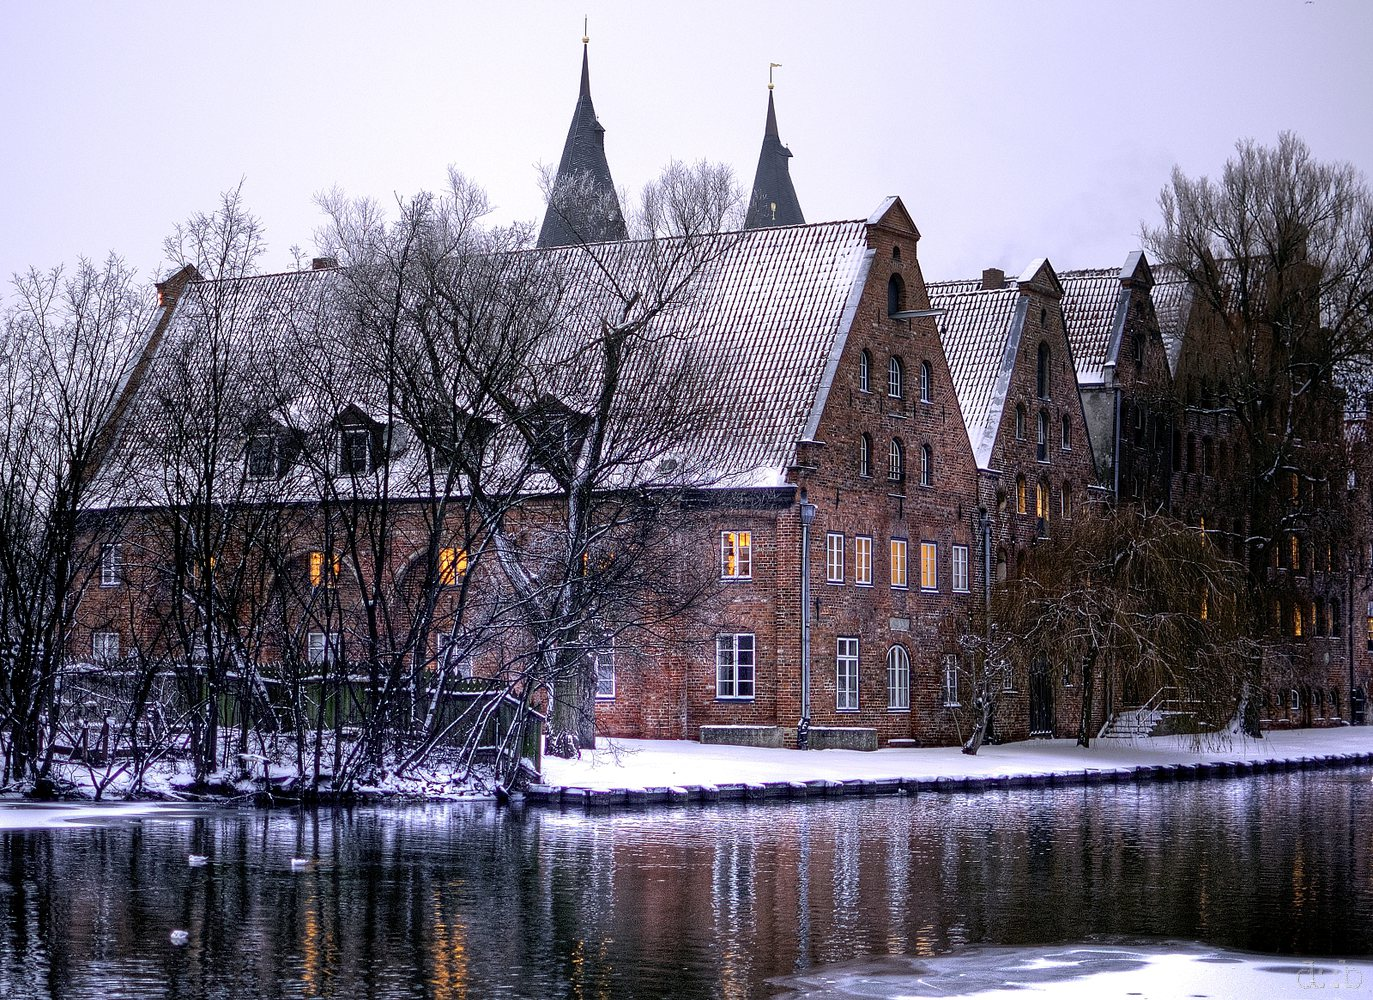 Snowed houses on the banks of the Trave in Lübeck.